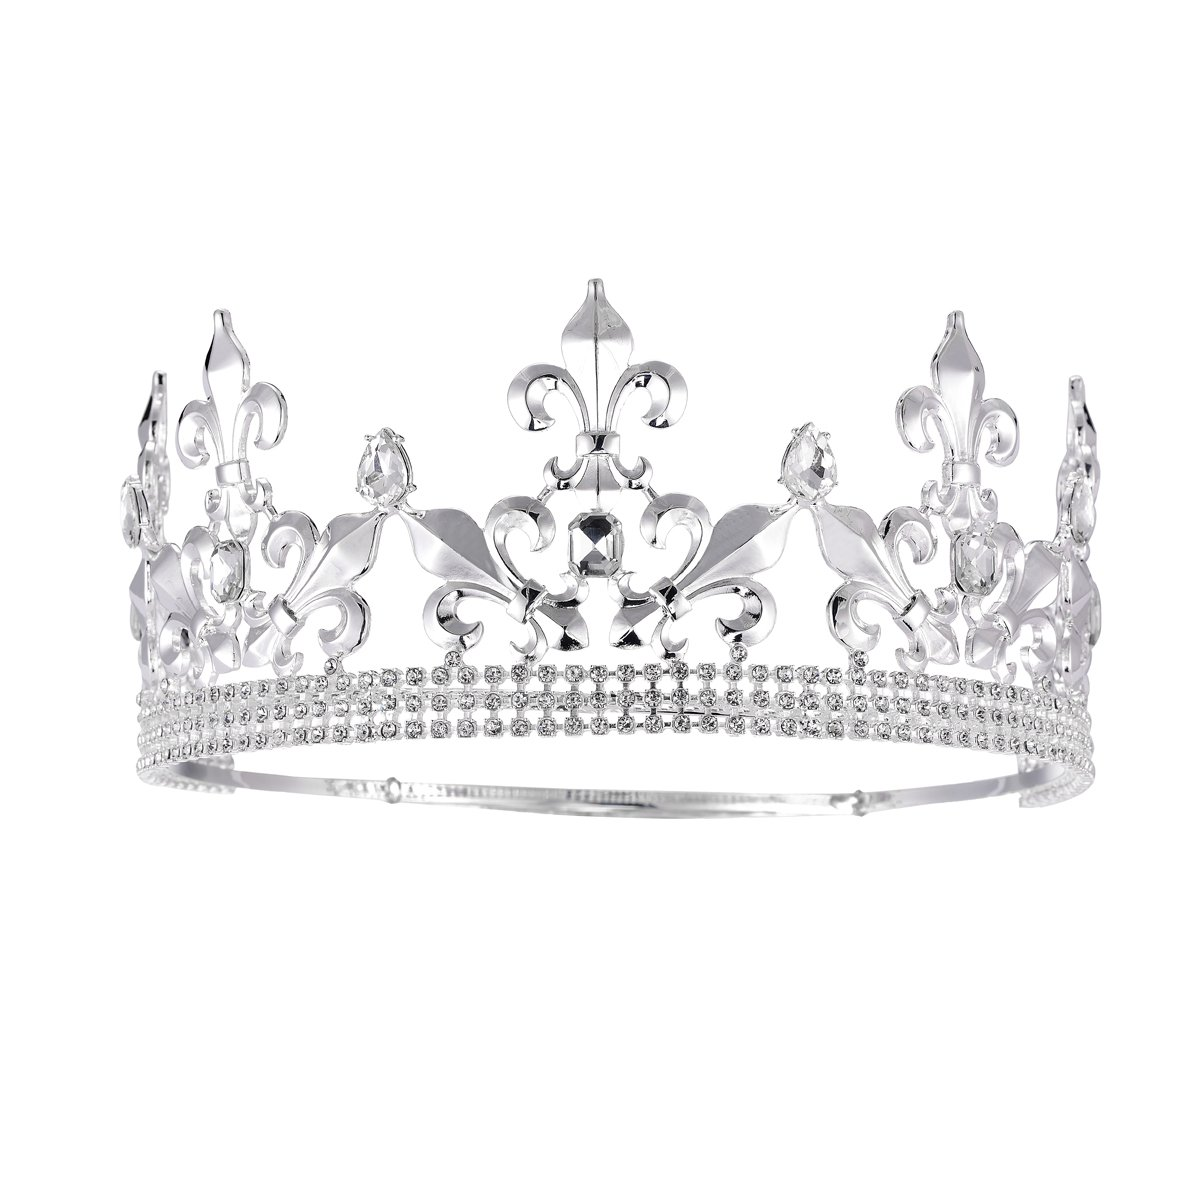 SSNUOY Adjustable Full Round Imperial Medieval Tiara Fleur De Lis King Crown Silver Finish